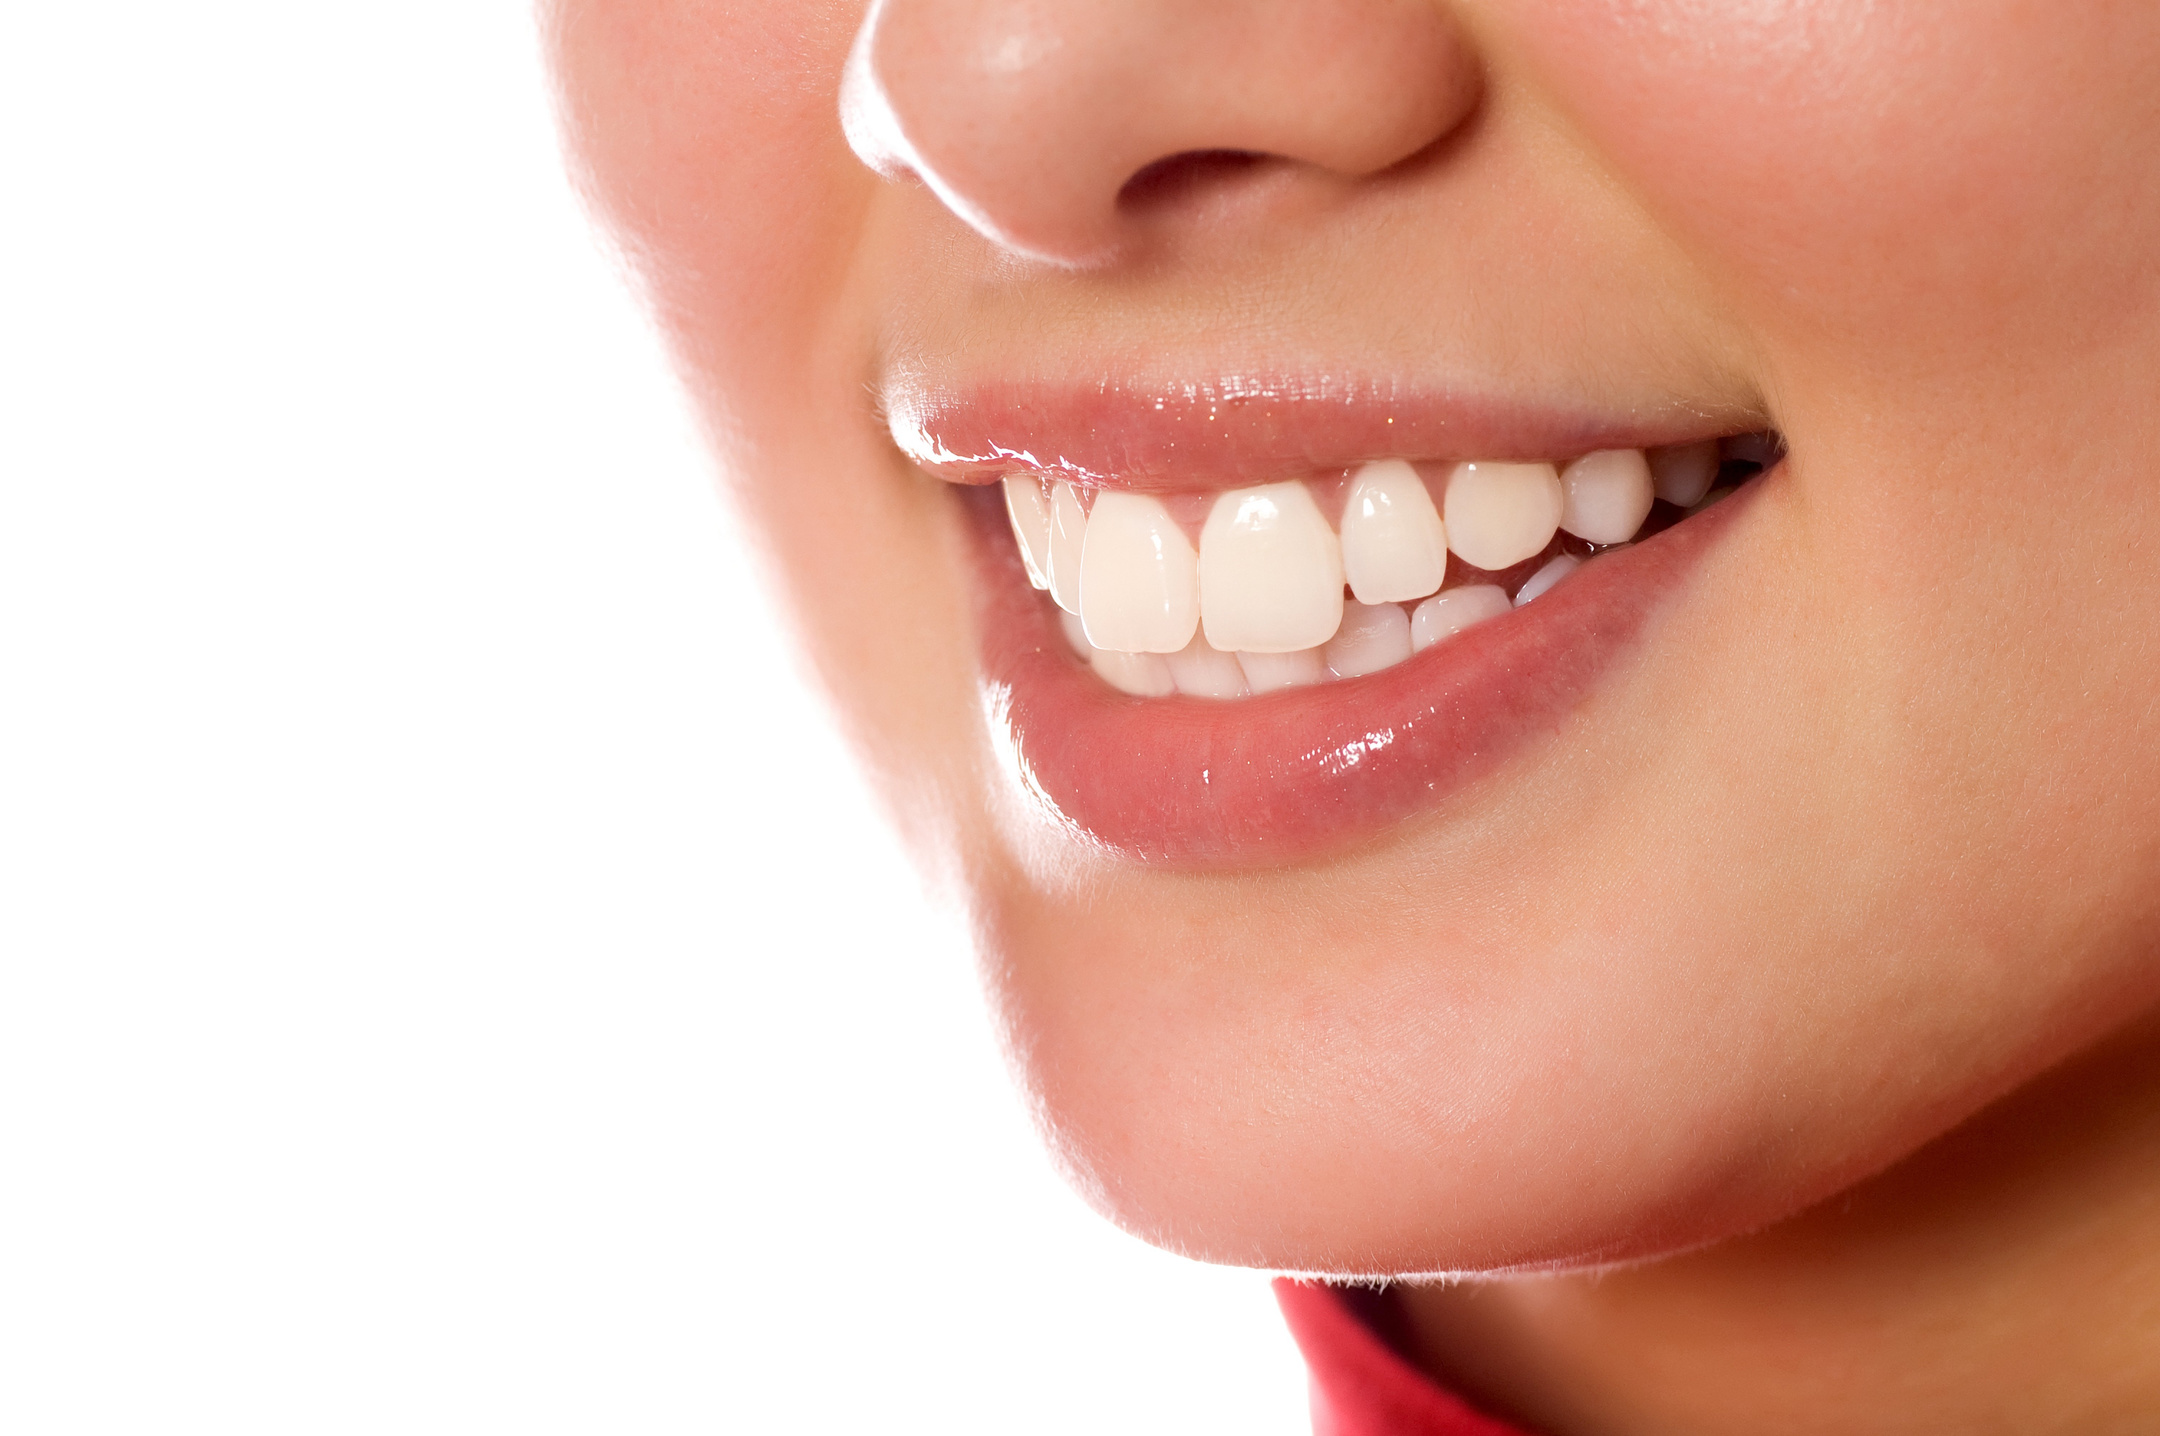 Anacortes Dentist to Assure Good Dental Health